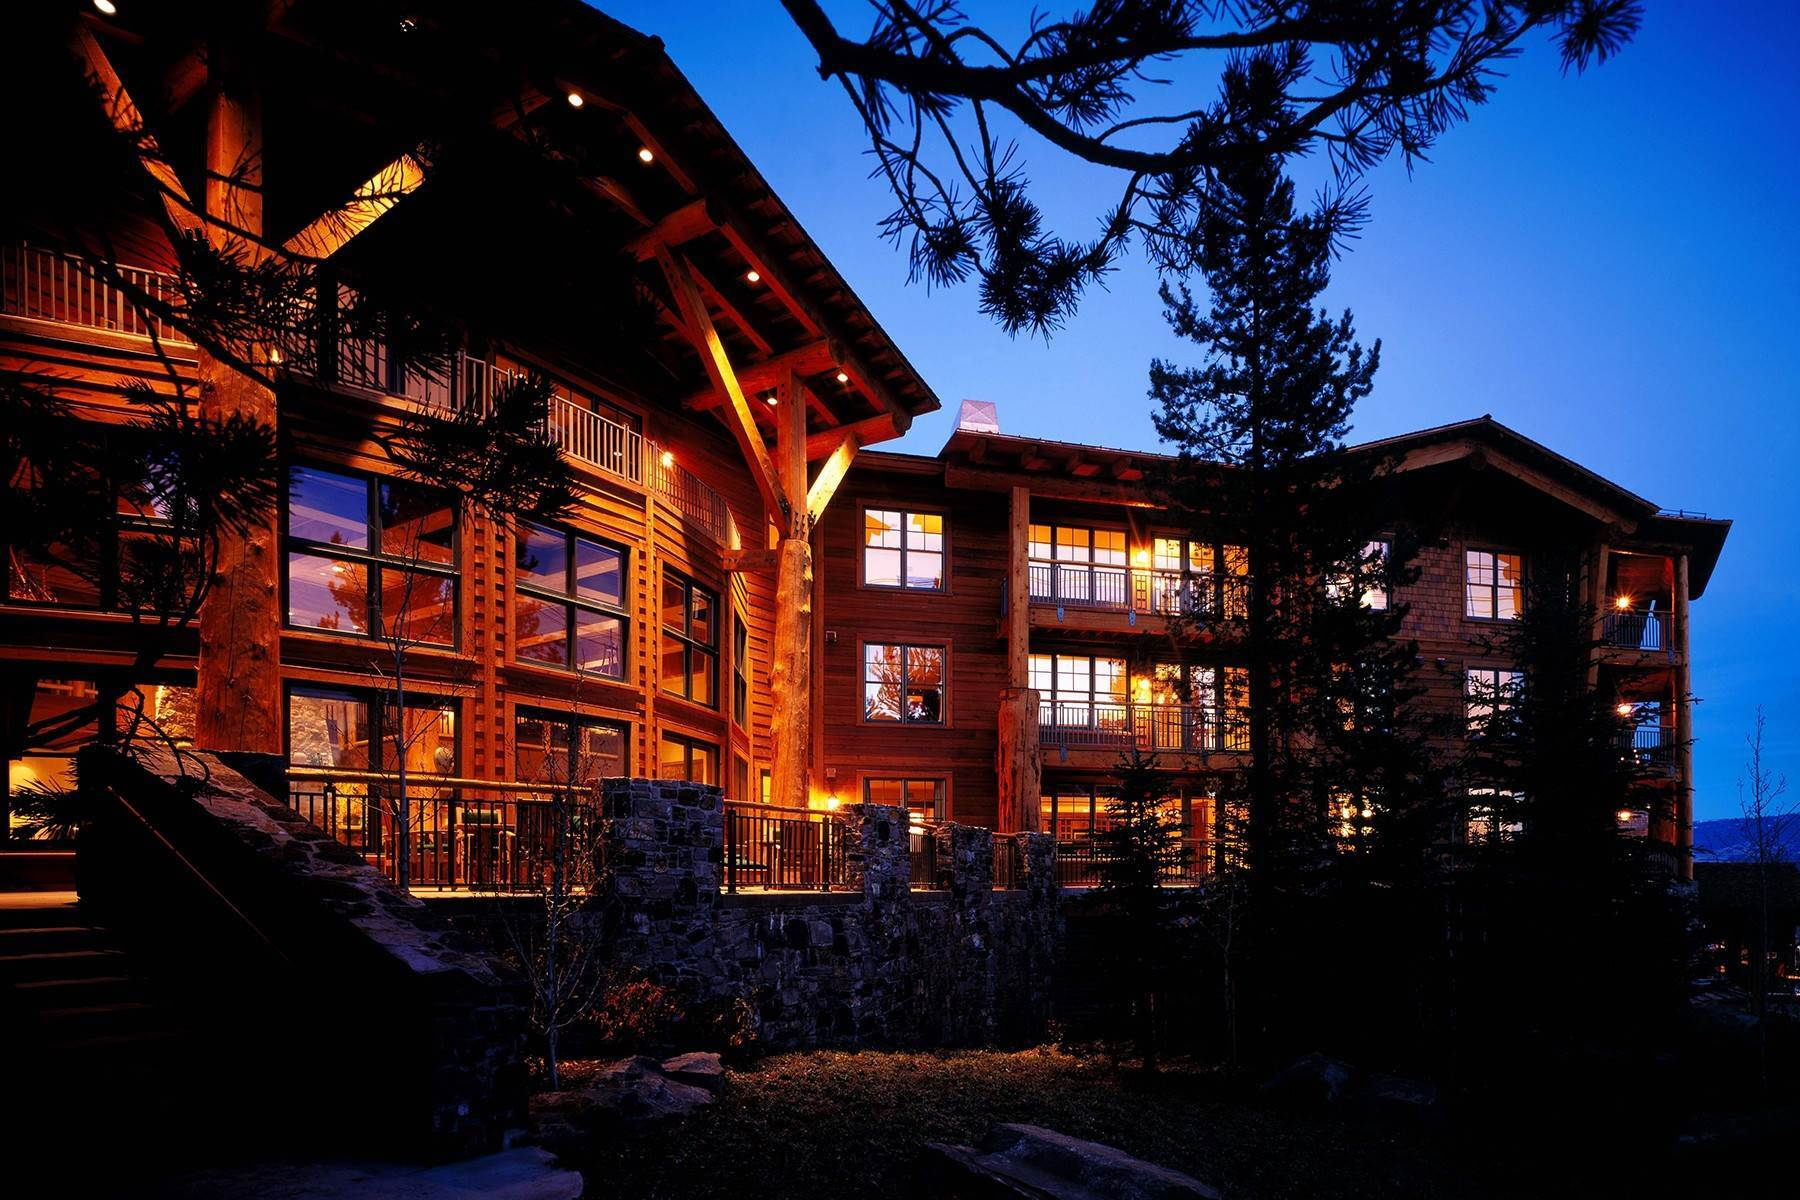 fractional ownership prop for Sale at 3340 W Cody Ln, #202 & 302 Teton Village, Wyoming 83025 United States